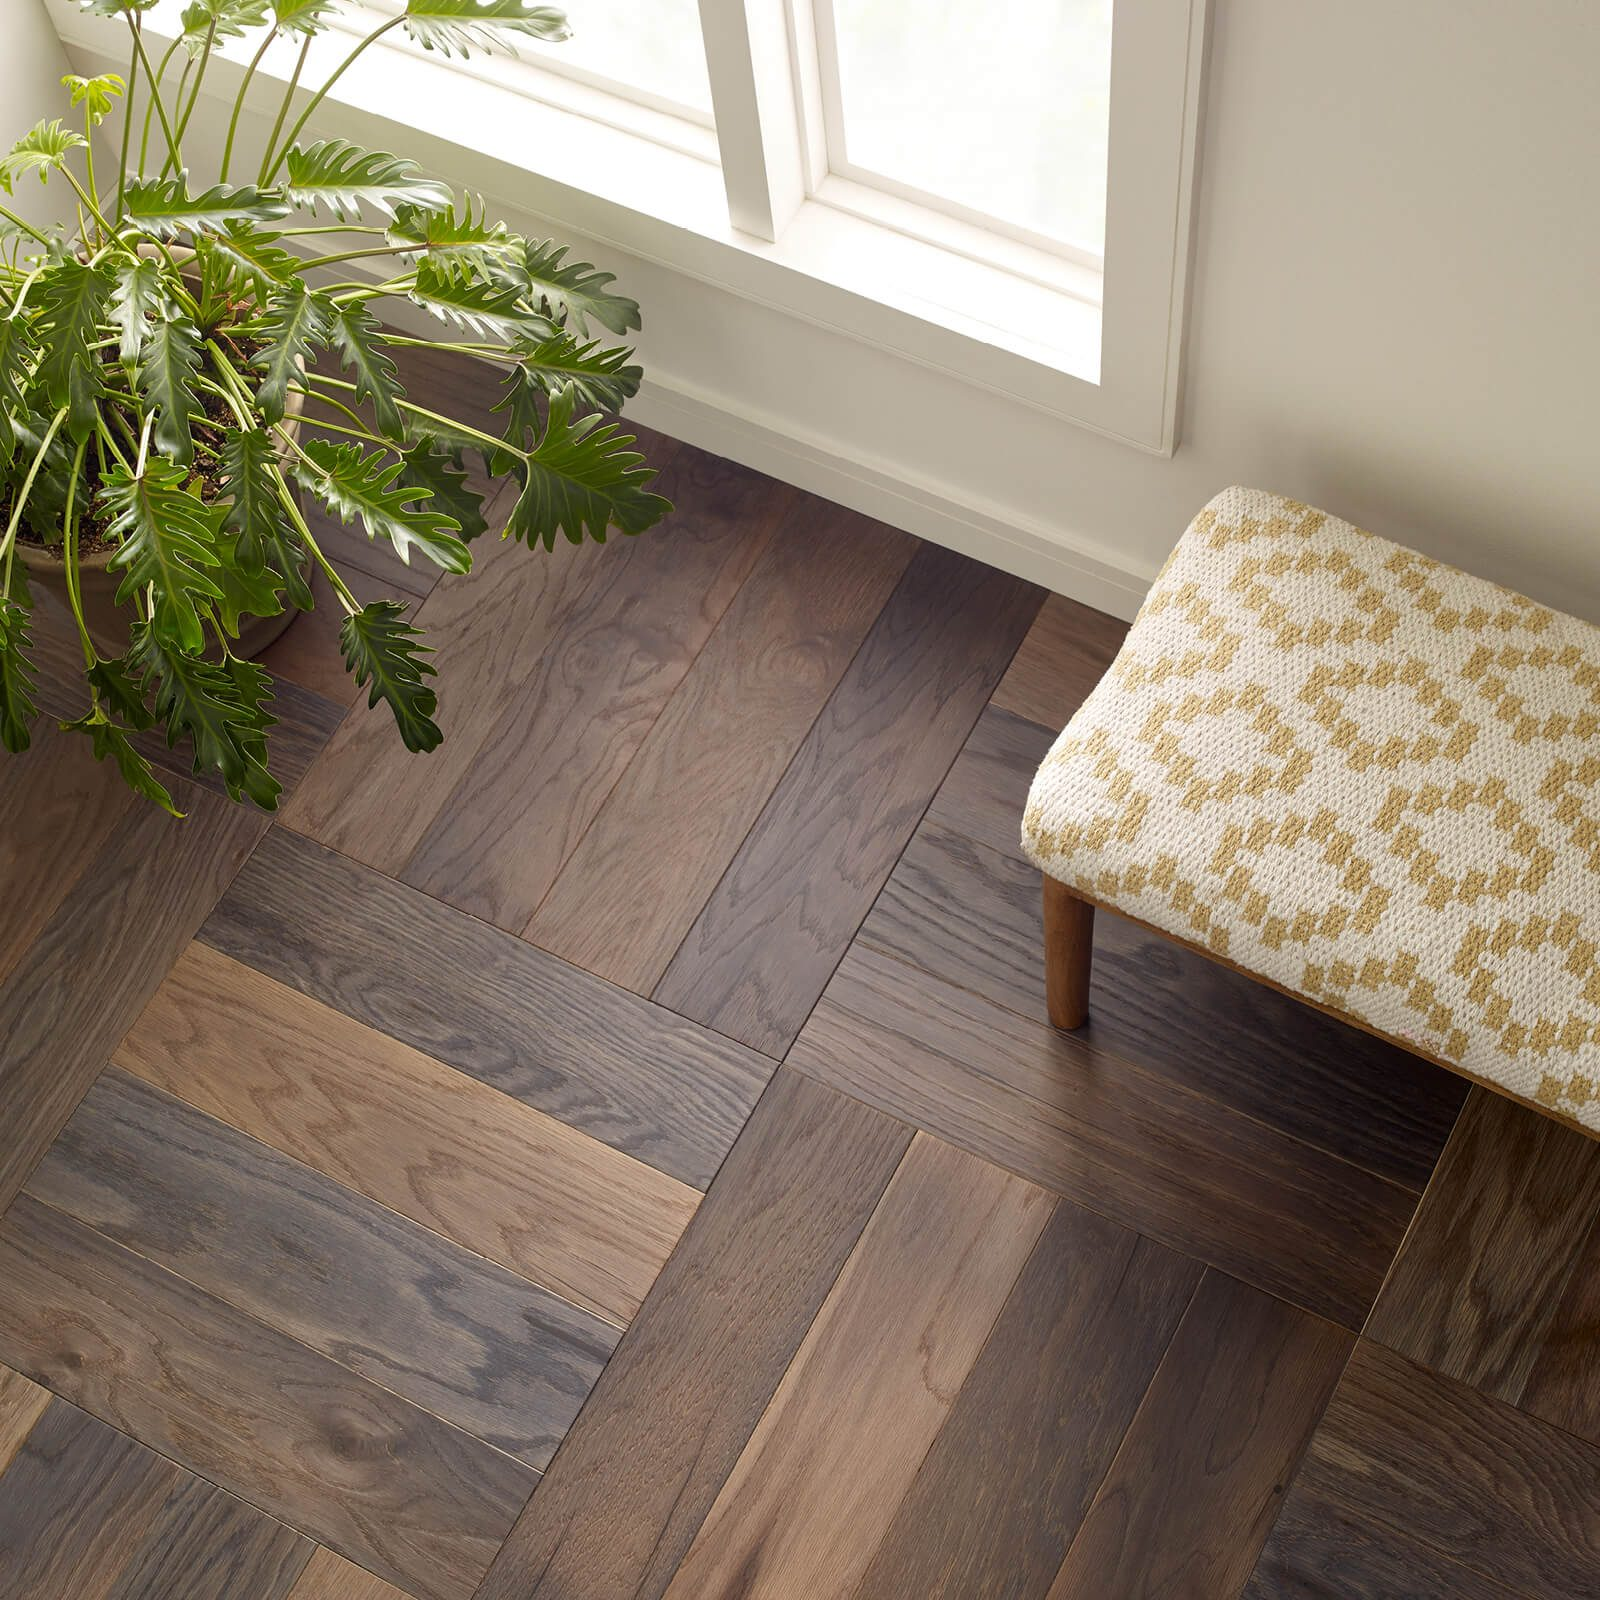 Buy Flooring for your Home | Leicester Flooring